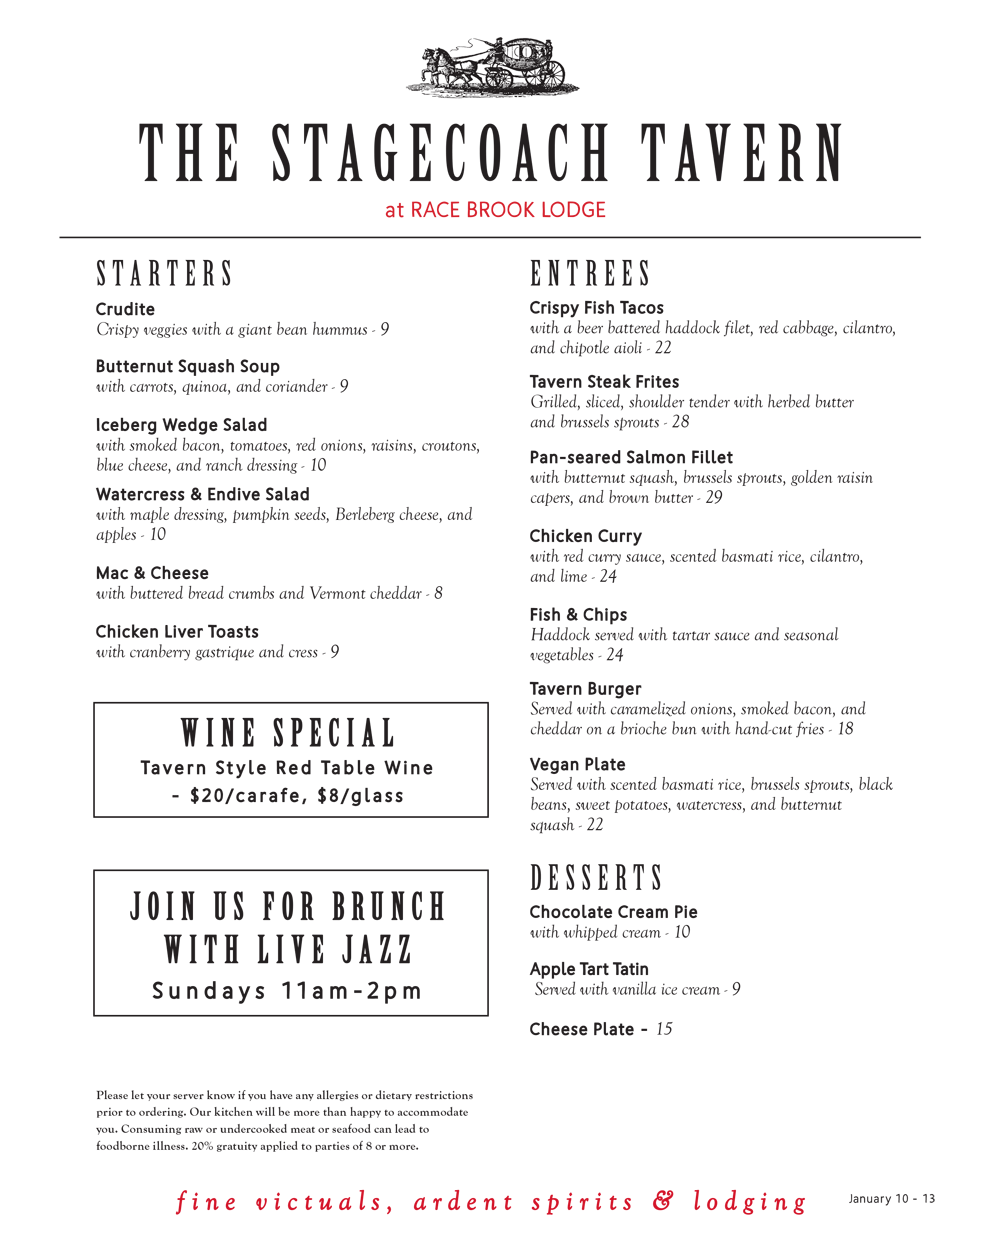 This week's menu at the Stagecoach Tavern